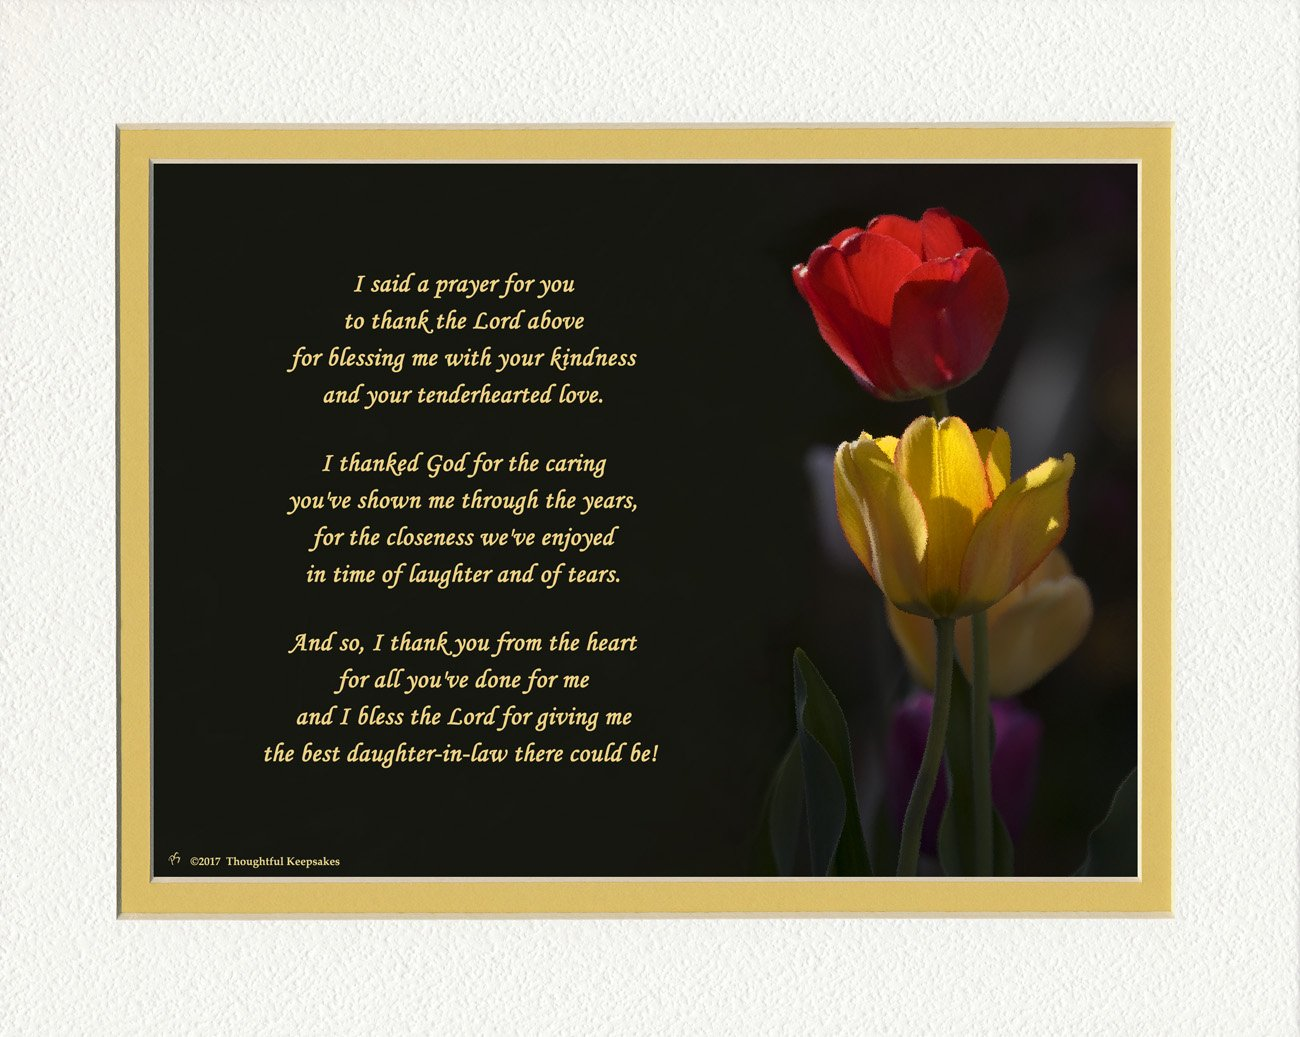 Daughter-in-Law Gift with Thank You Prayer for Best Daughter in law Poem. Red & Yellow Tulips Photo, 8x10 Double Matted. Special Birthday Gifts, Thank You Gift or for Daughter-in-Law.